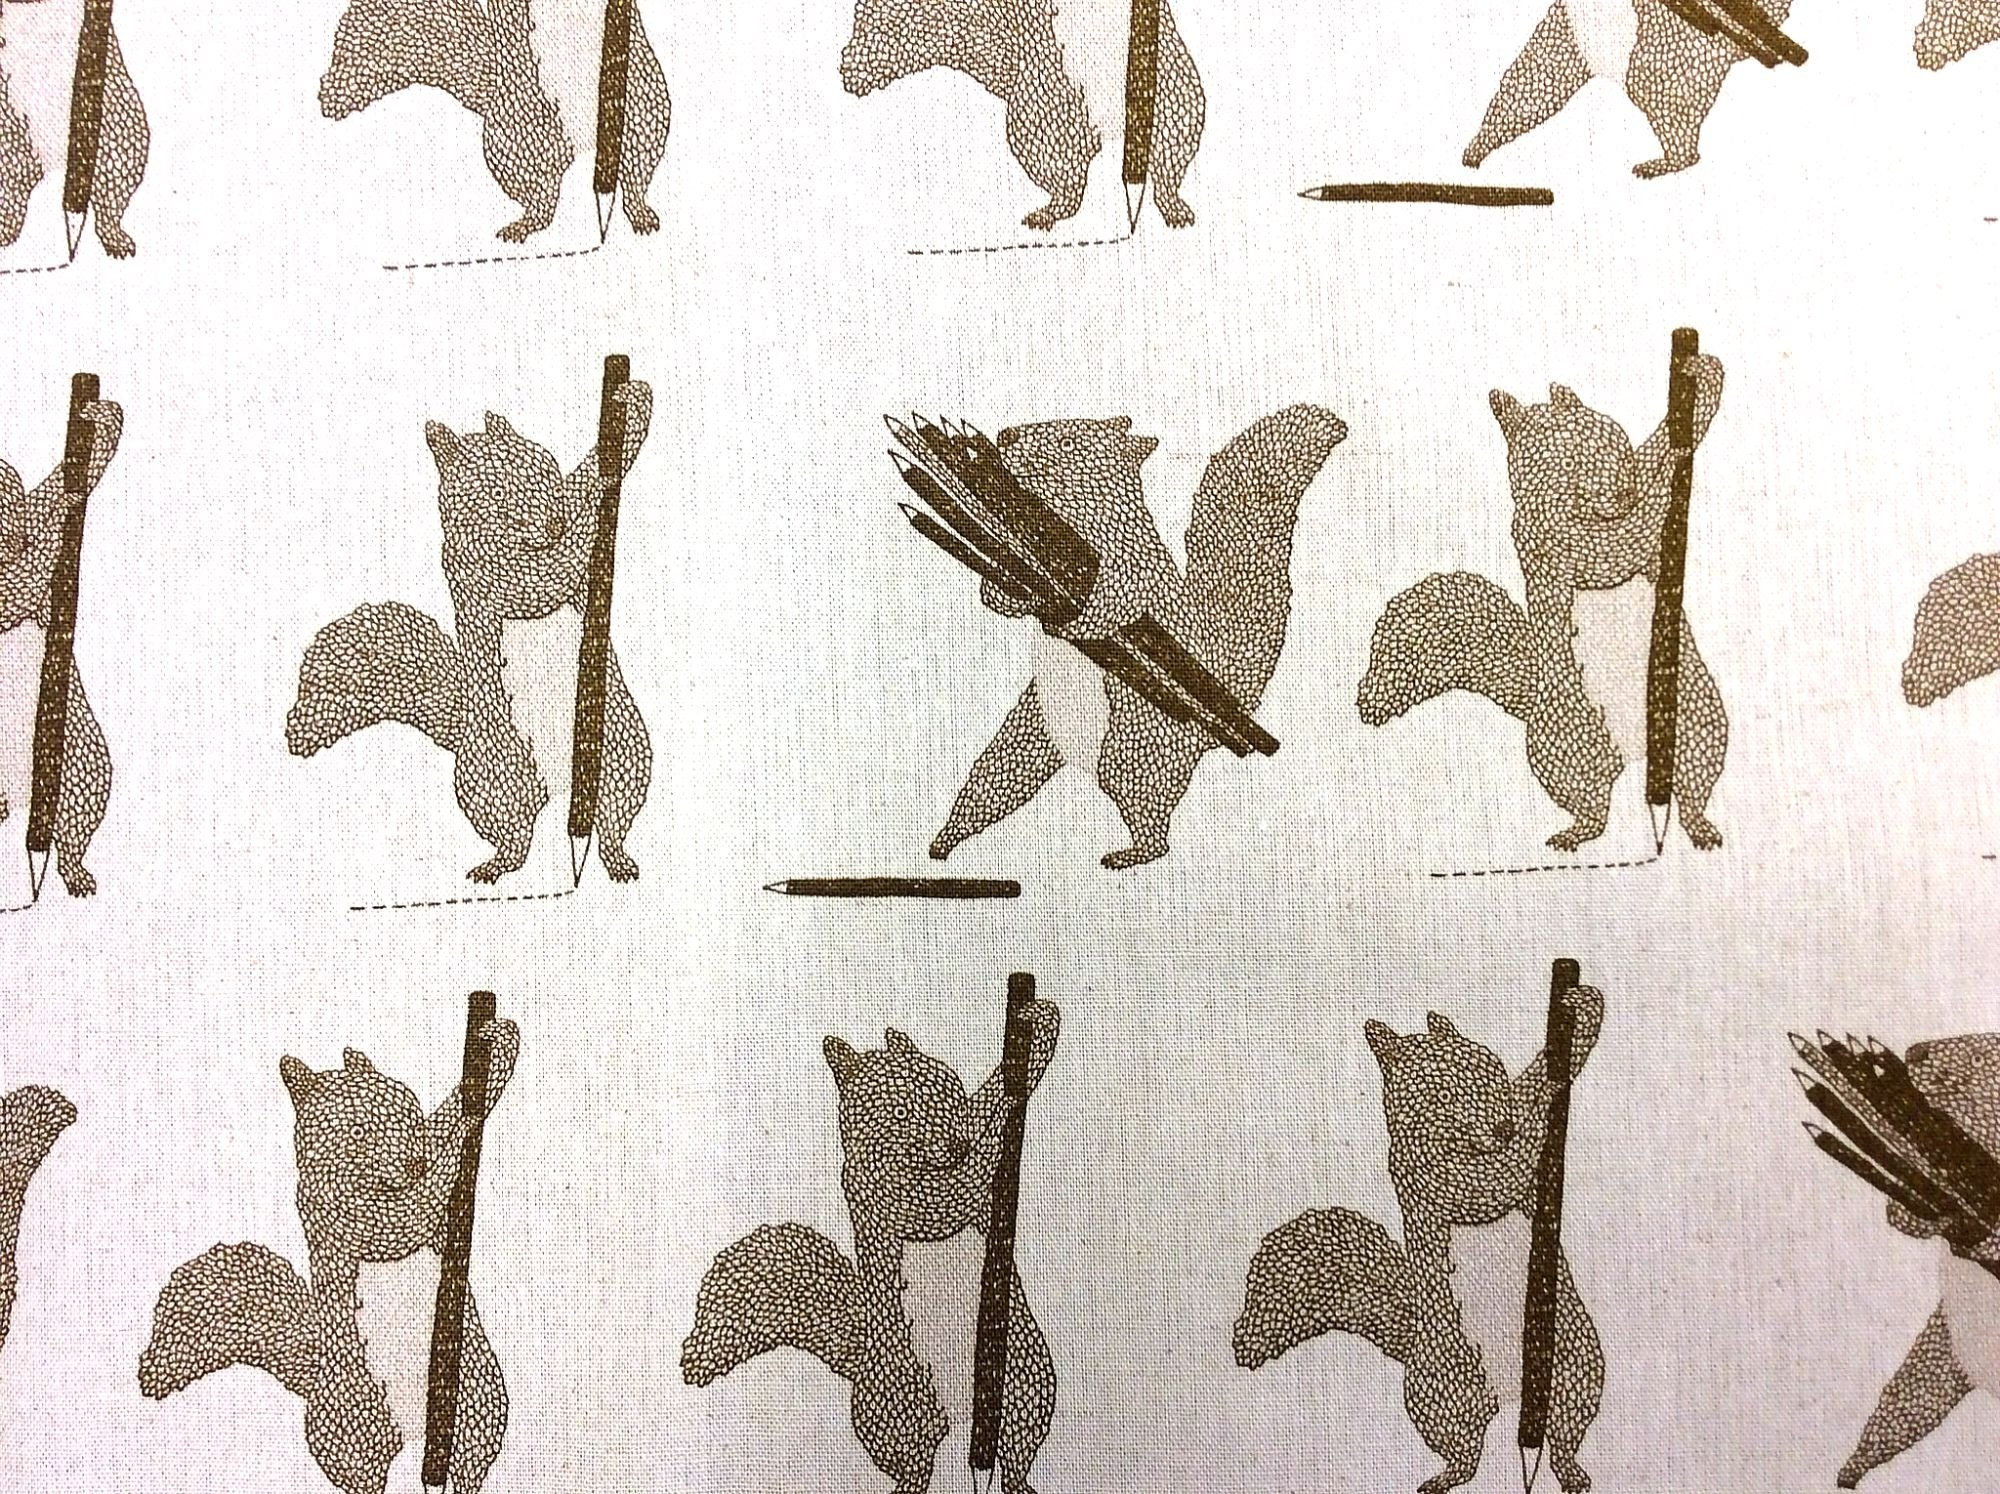 Japanese Asian Squirrel Sketch Cotton Canvas Fabric  QH32